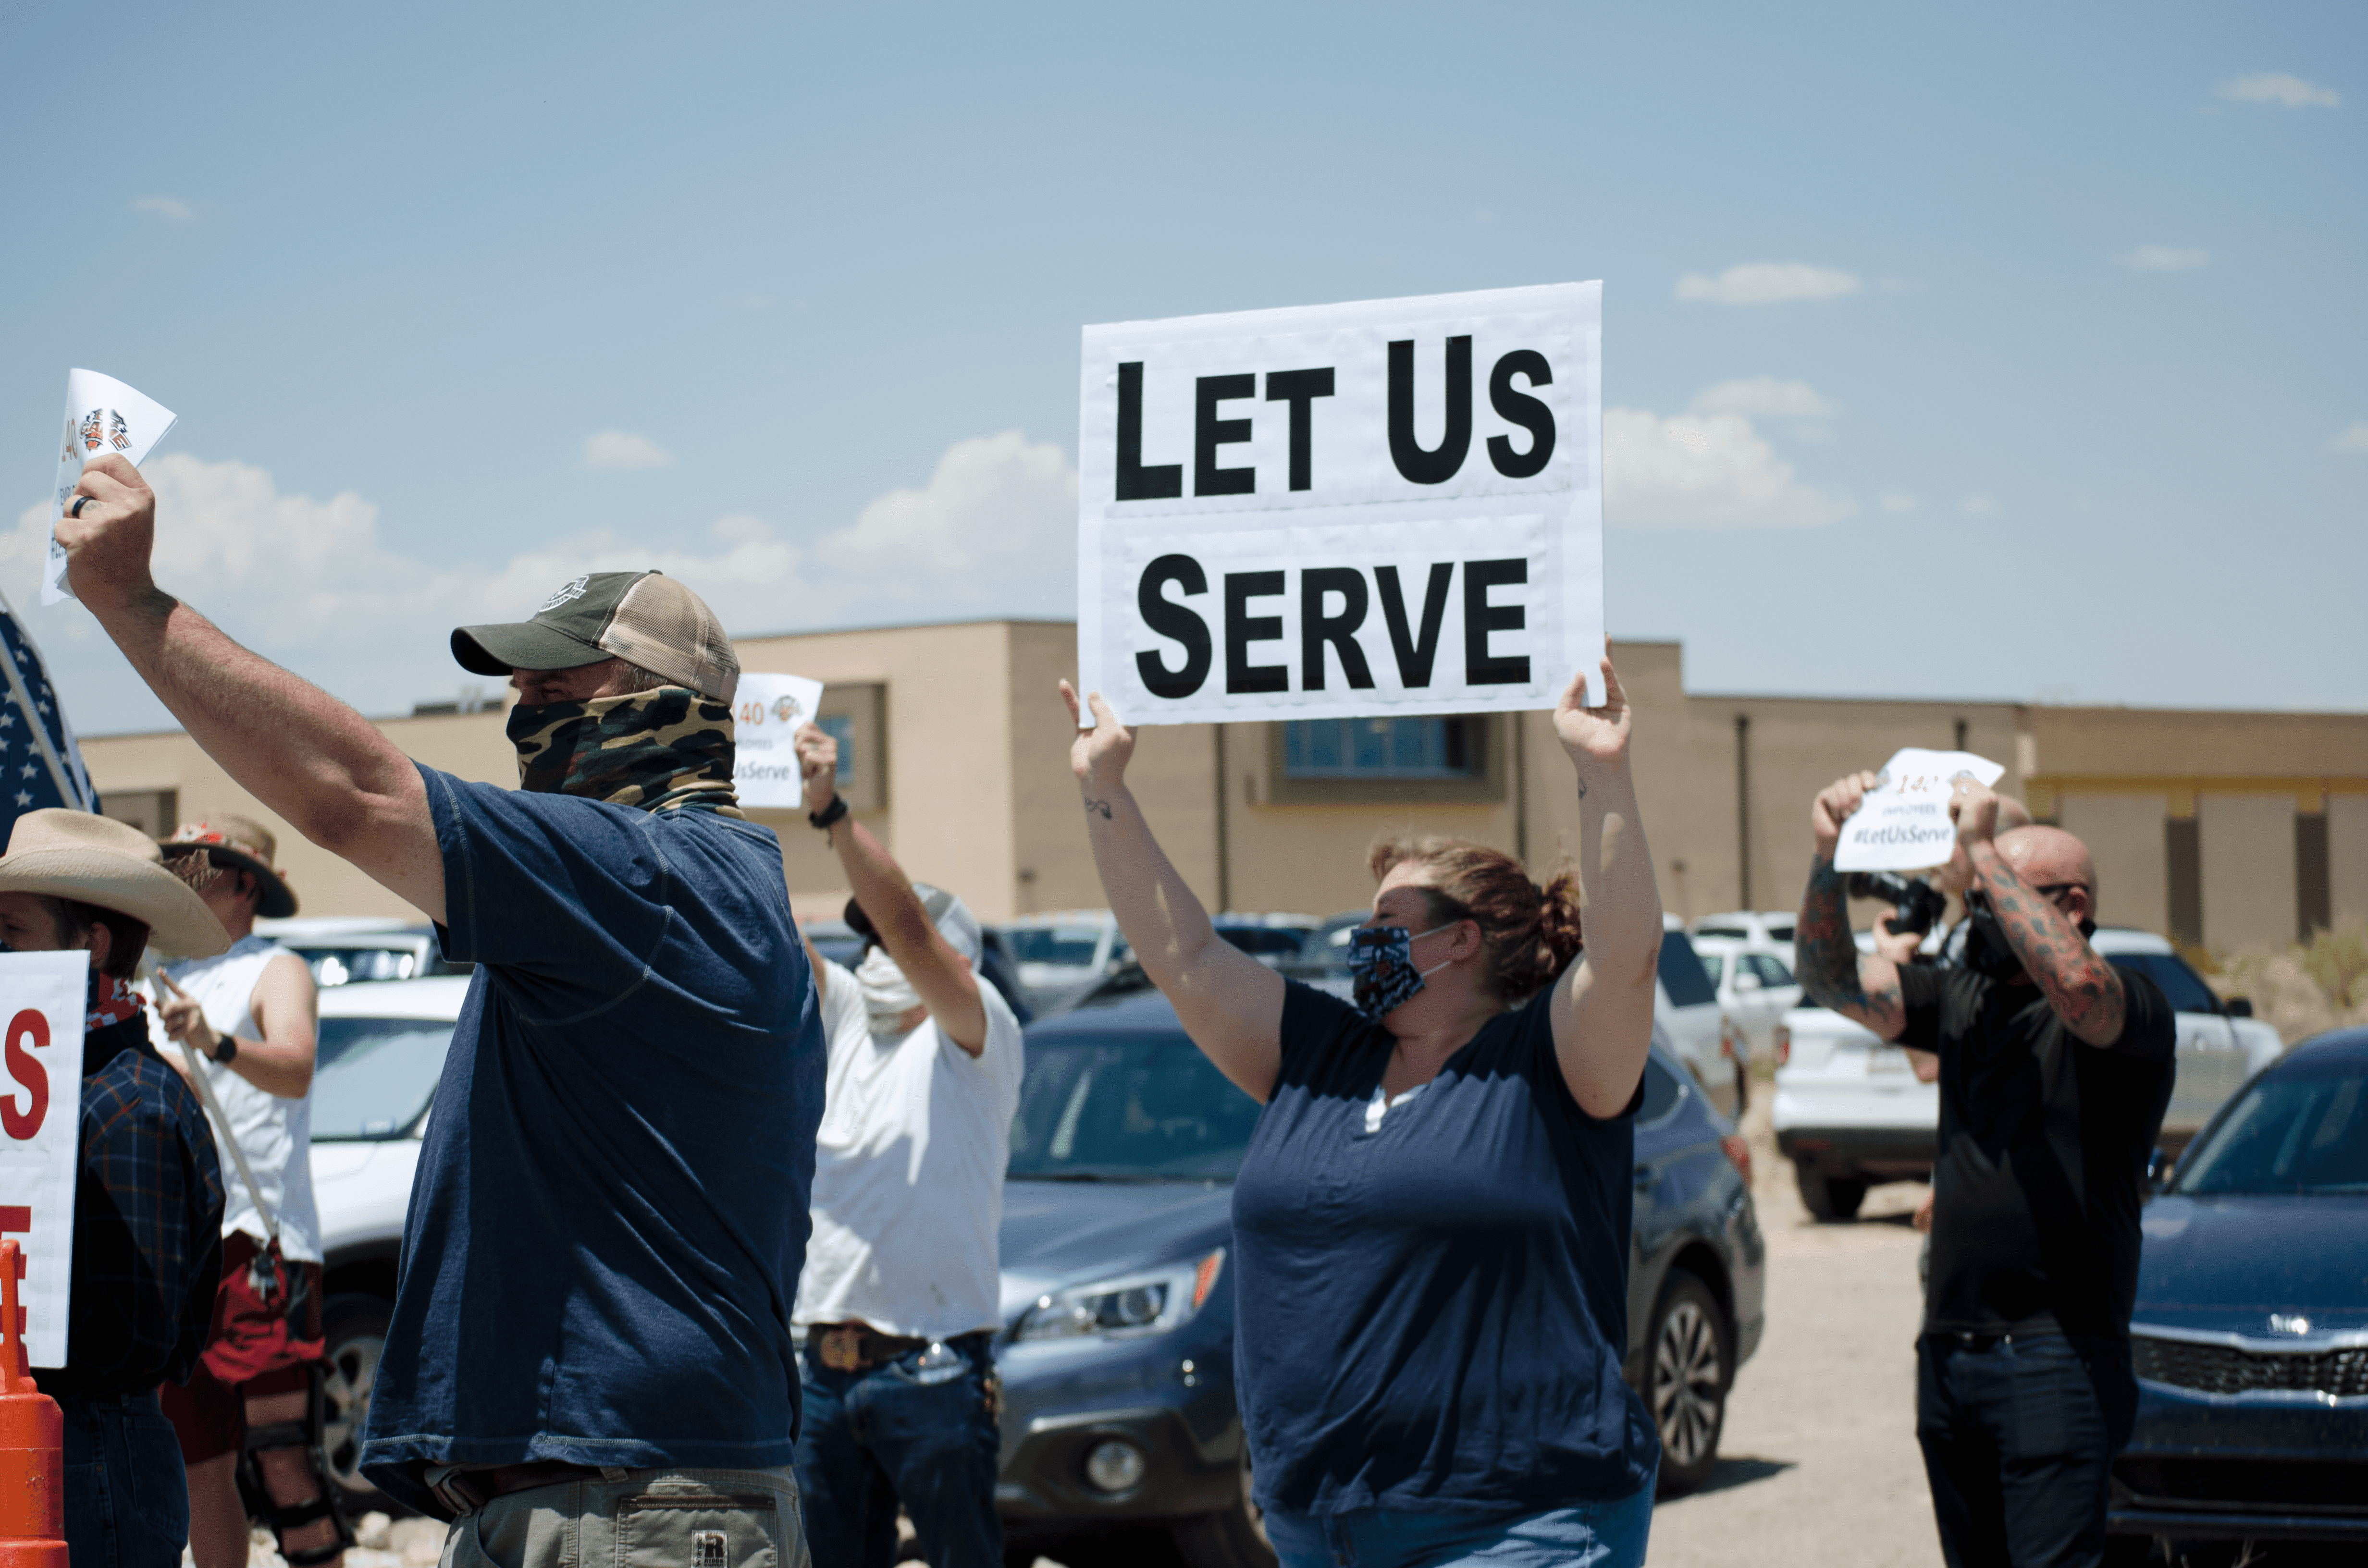 Protesters gather in front of The Game II restaurant in Las Cruces on Monday, July 13, 2020, to protest the restriction of indoor dining at New Mexico restaurants due to the latest COVID-19 health order.